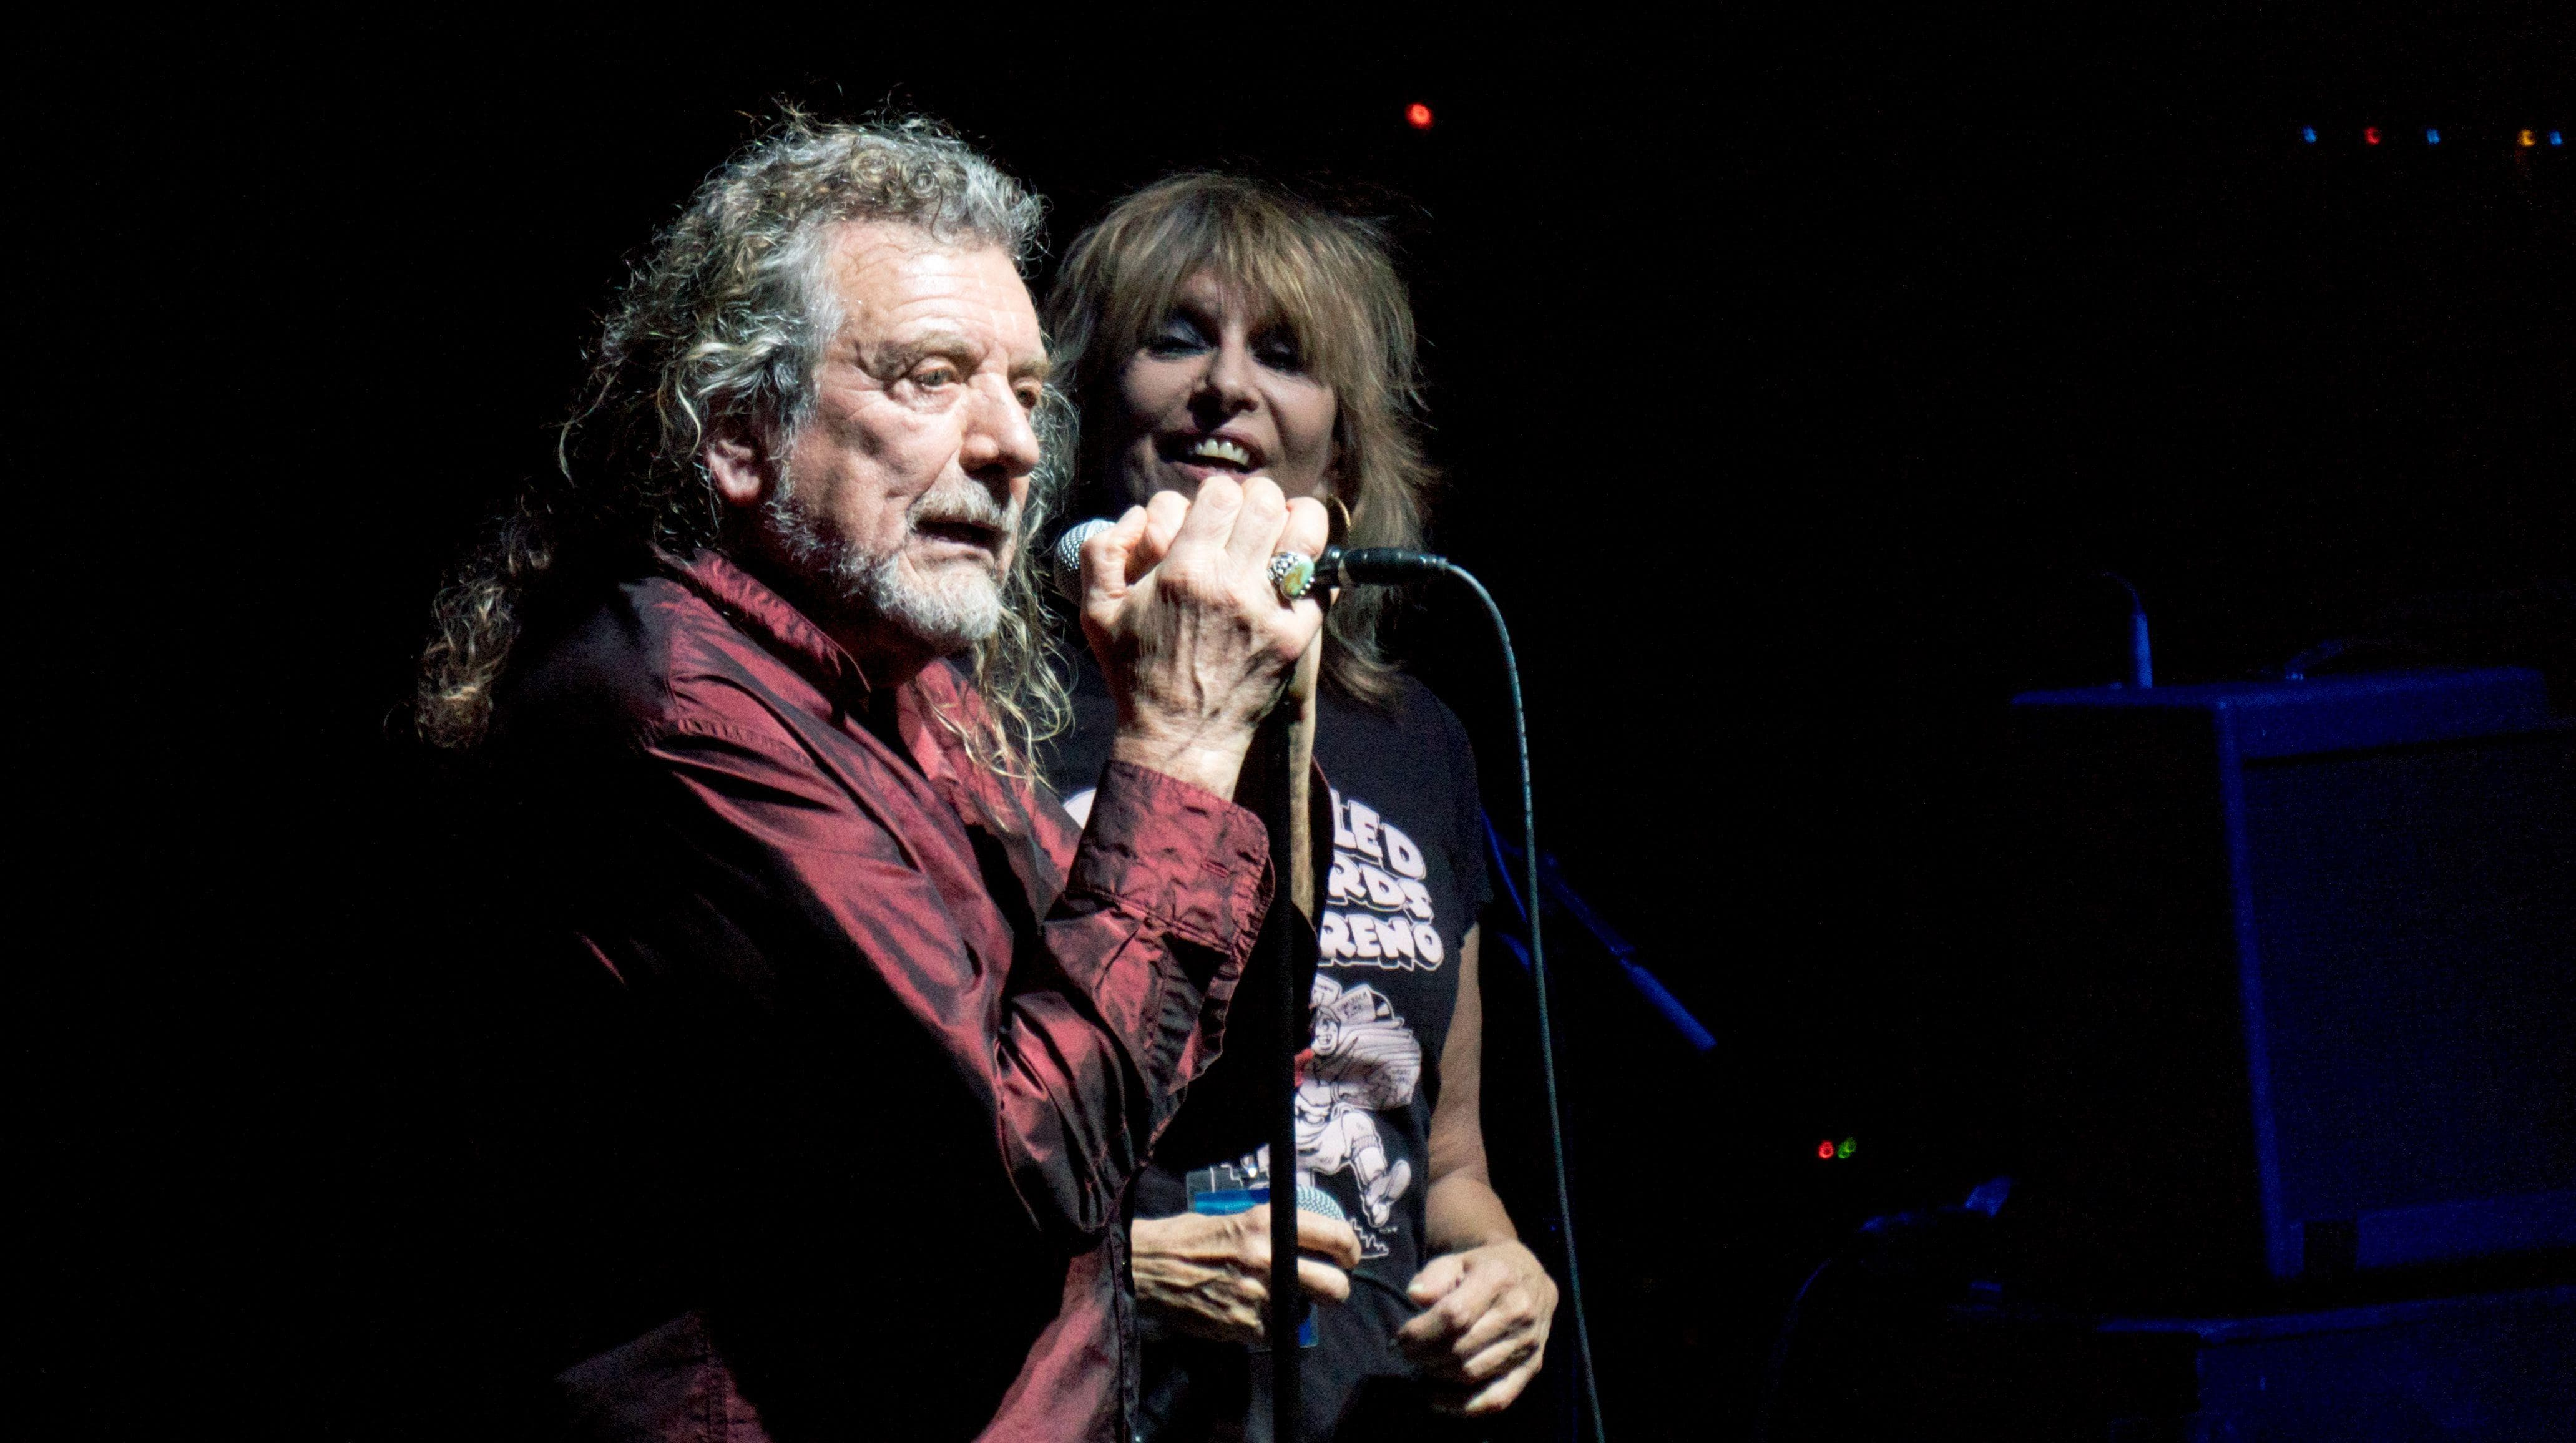 Image of Random Fascinating Facts You Didn't Know About Robert Plant